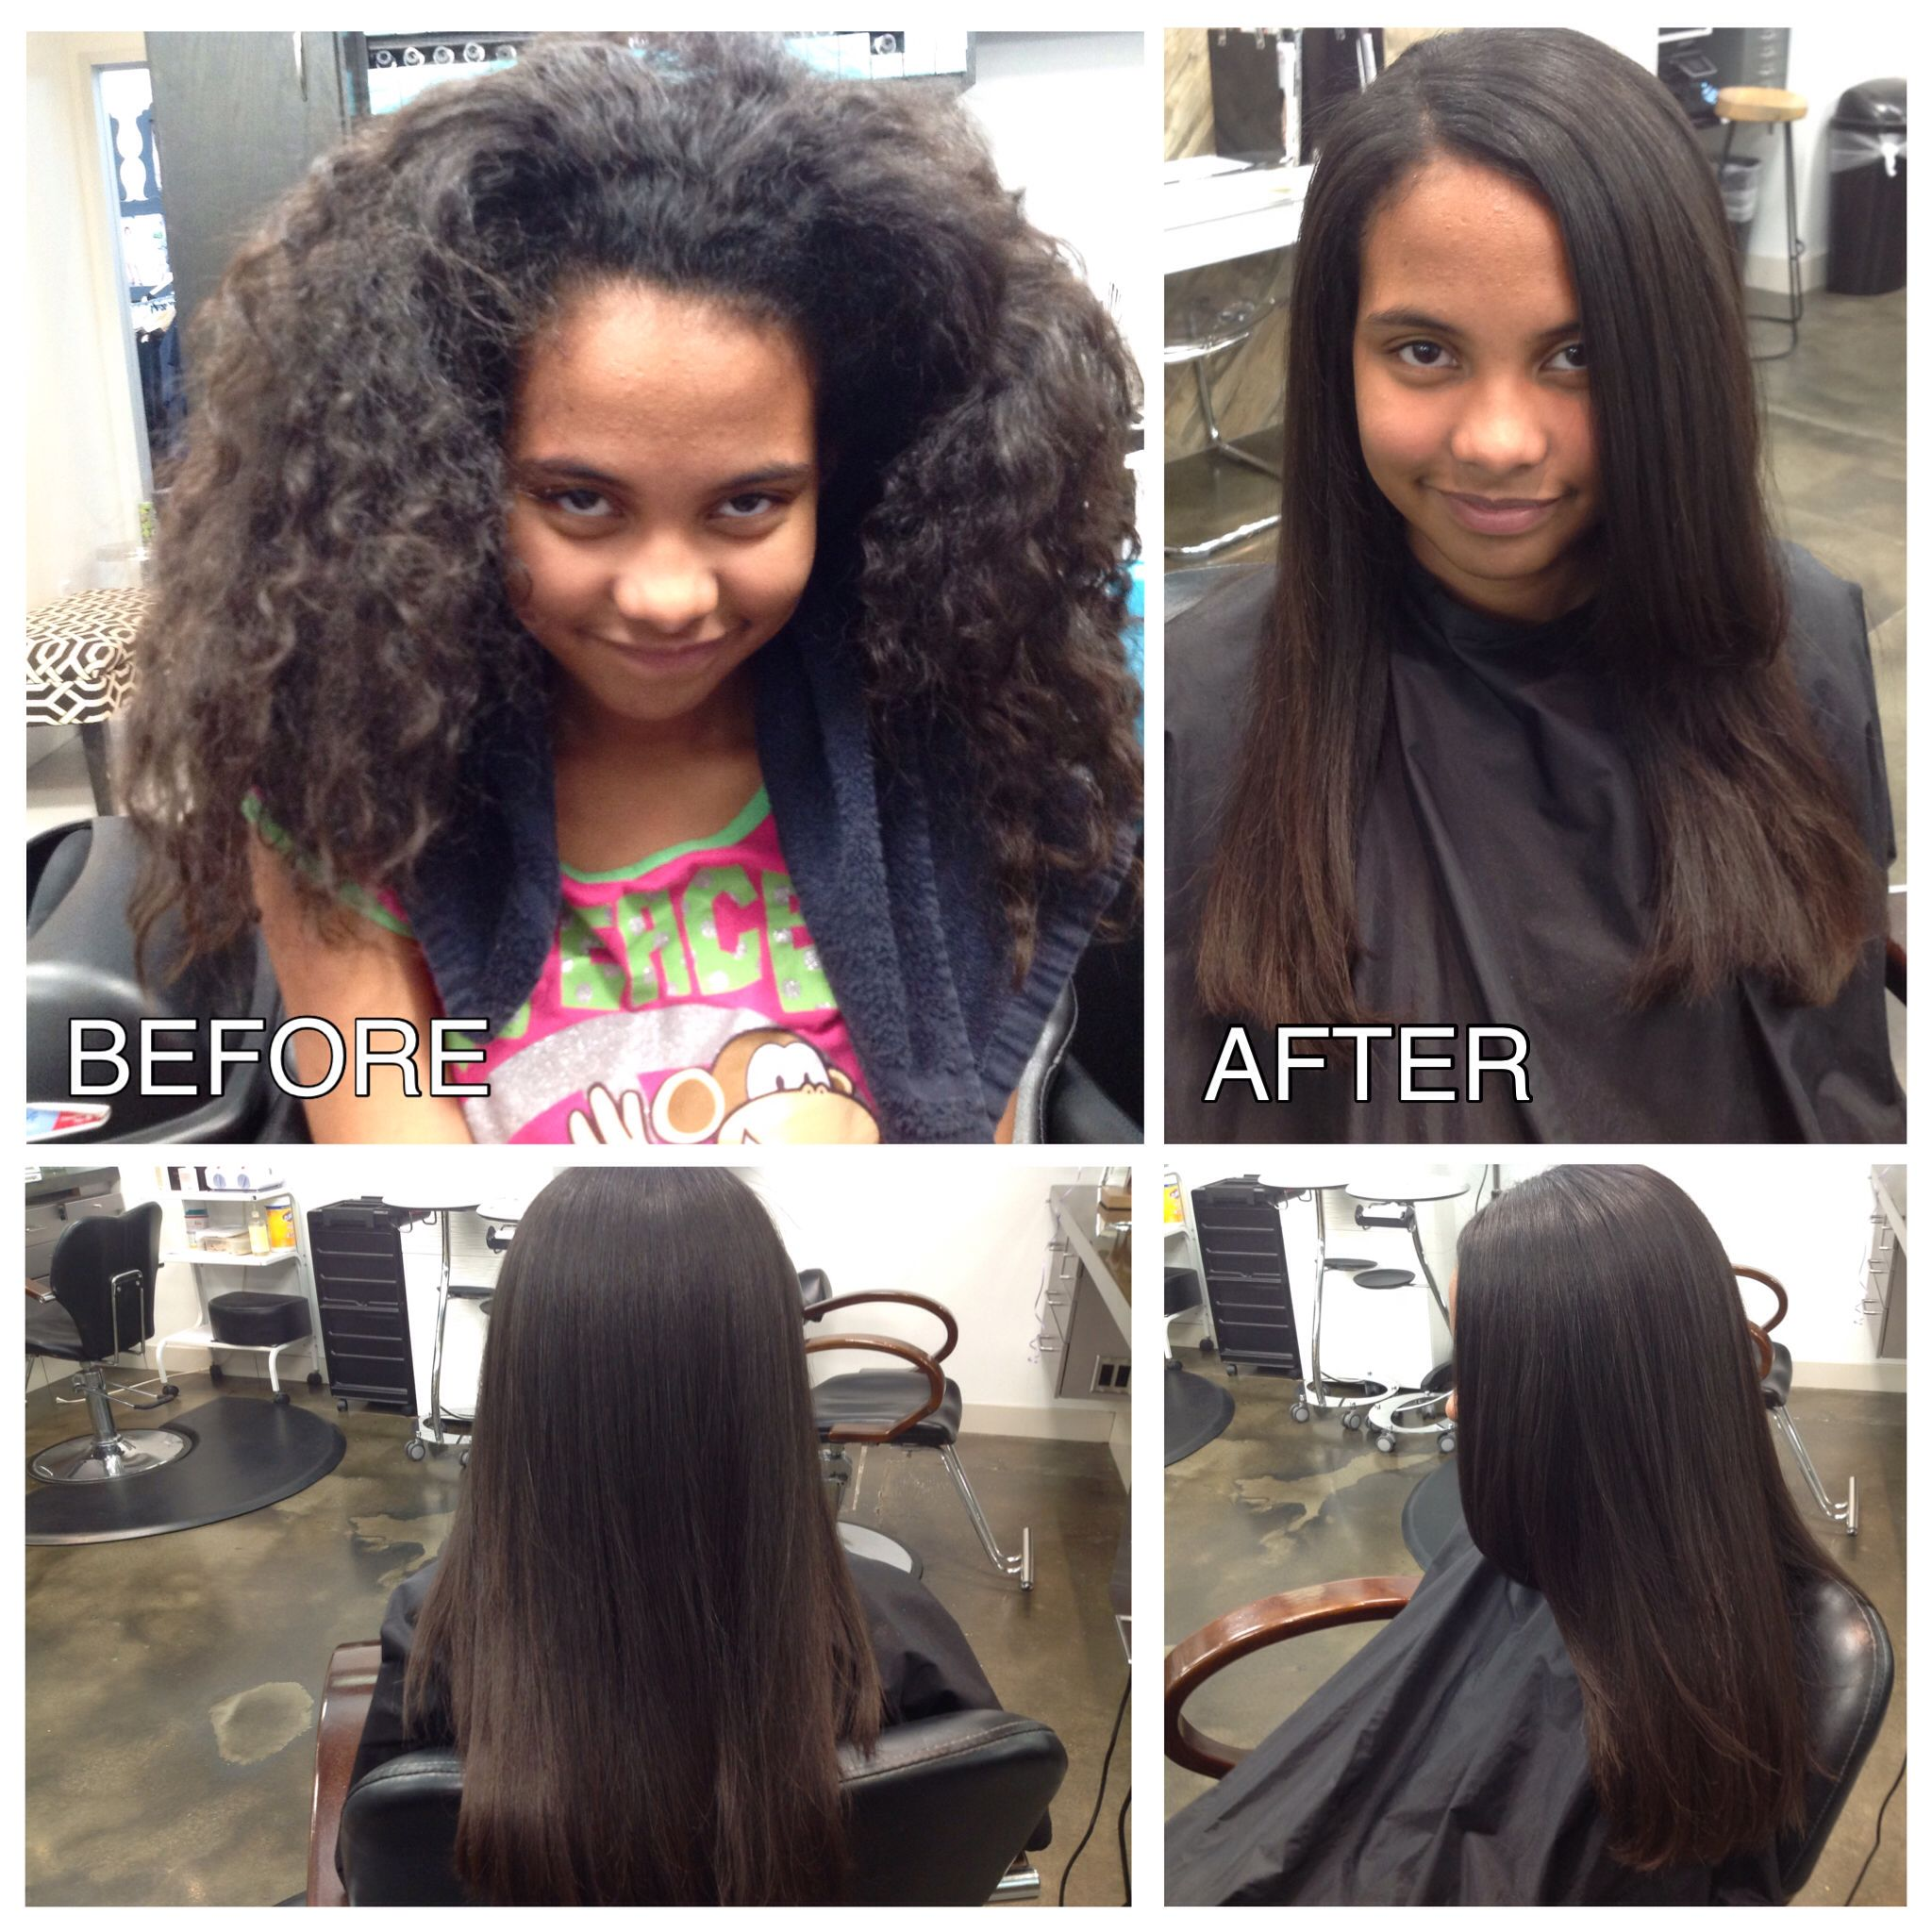 Before And After Brazilianblowout Brazilianblowout Frizz Hair Thewoodlands 77389 Brazilian Blowout Frizz Hair